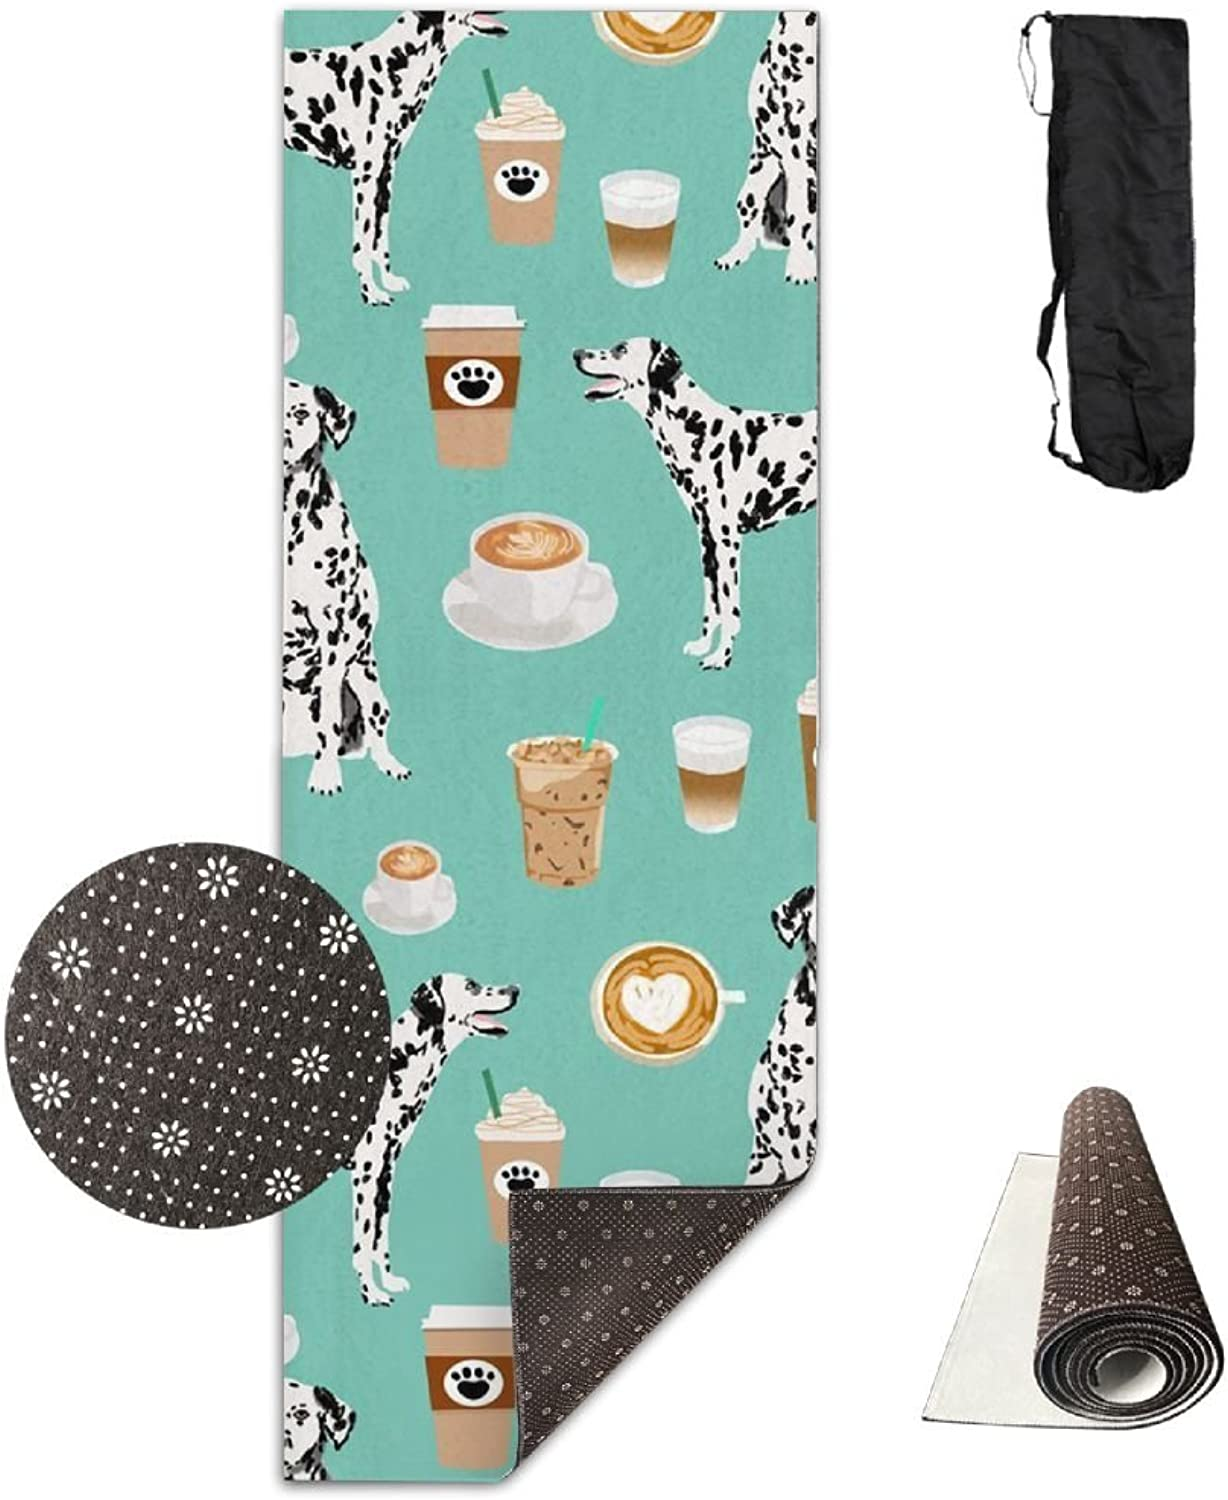 HHHSSS Long 70inch Wide 28inch Non Slip  Dalmatians Cute Mint Coffee Best Dalmatian Dog Print Exercise Mat for Yoga, Workout, Fitness with Carrying Strap & Bag